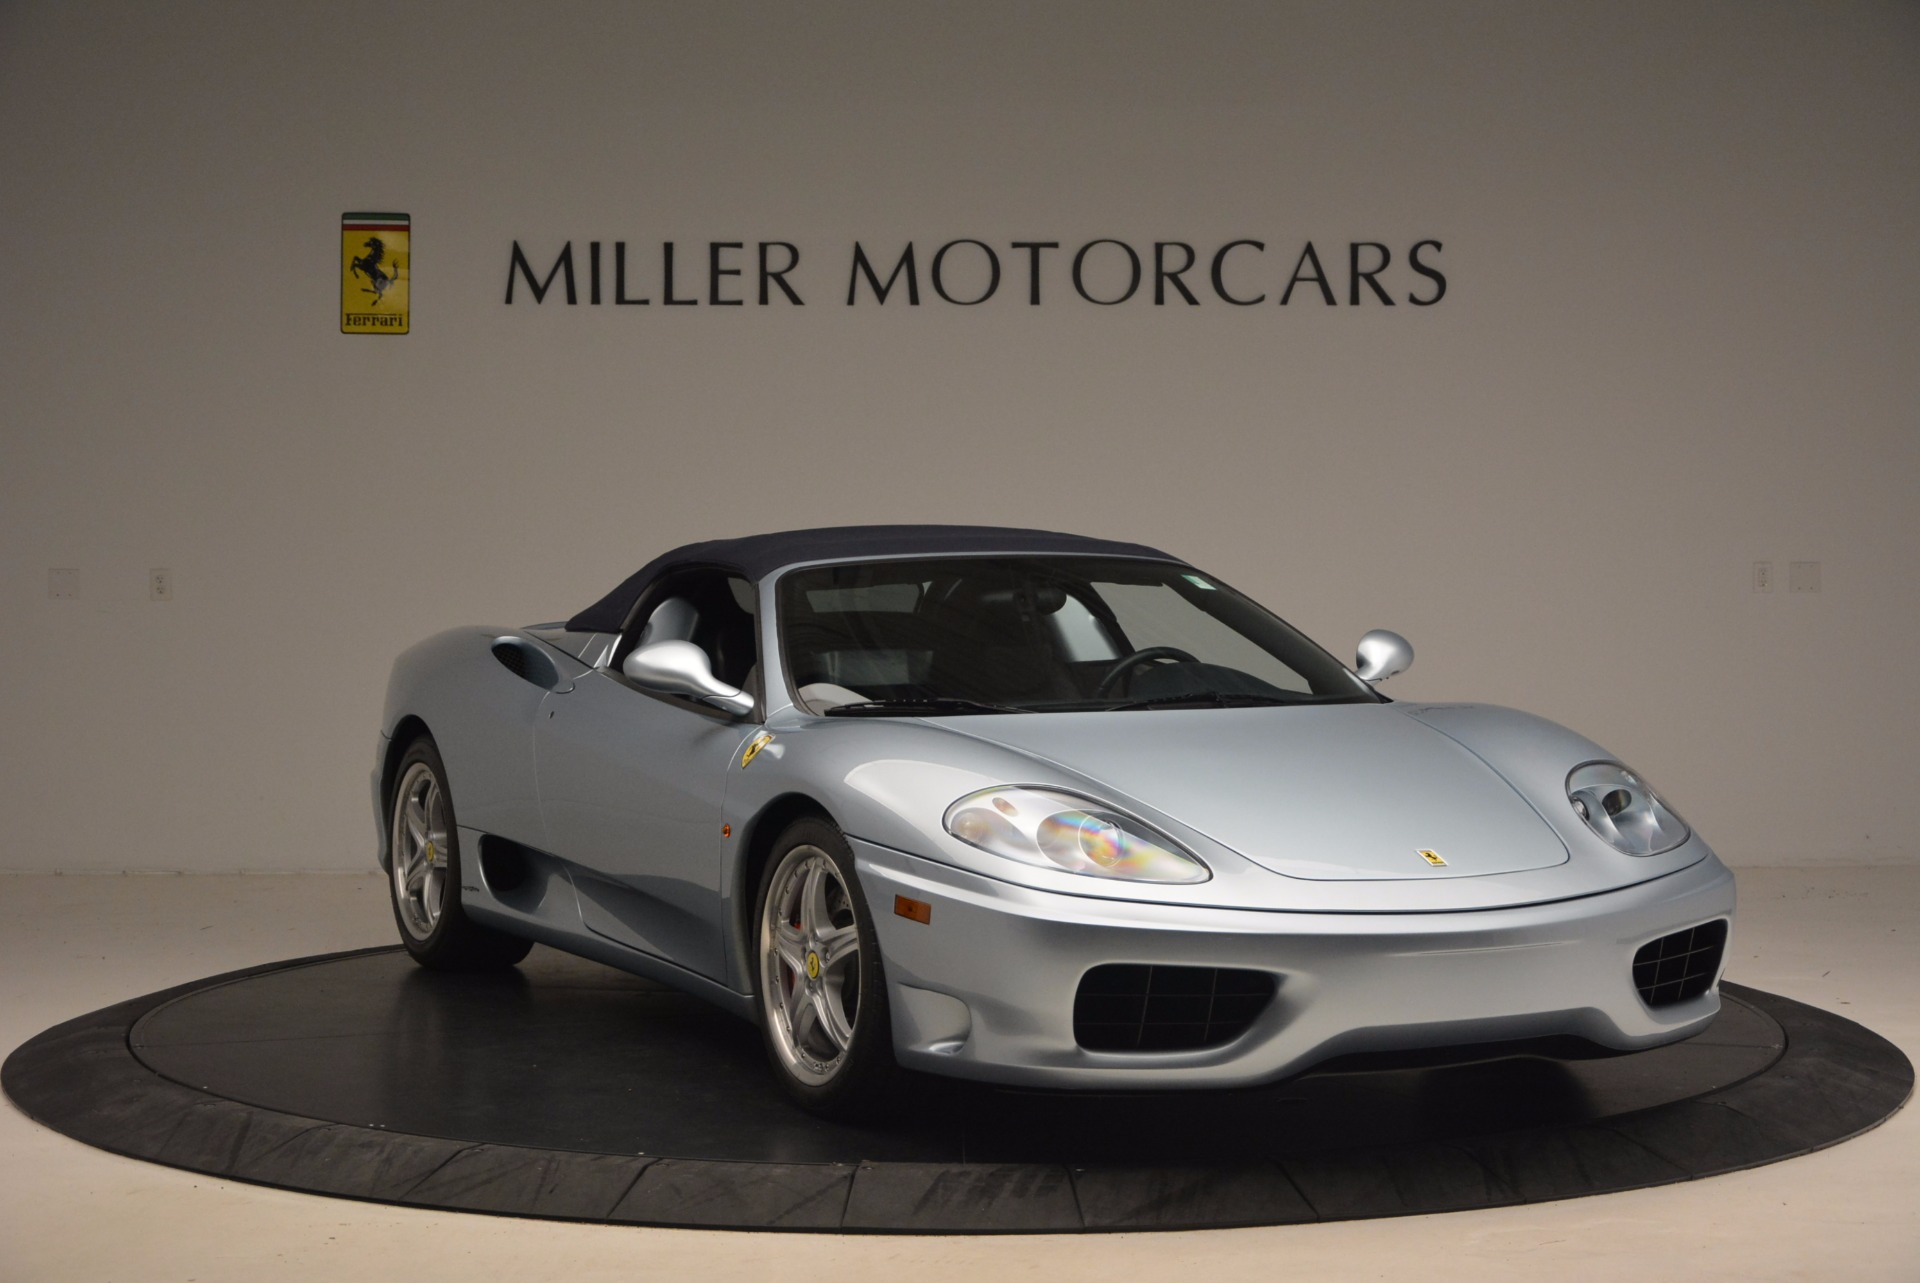 Used 2003 Ferrari 360 Spider 6-Speed Manual For Sale In Greenwich, CT 1445_p23